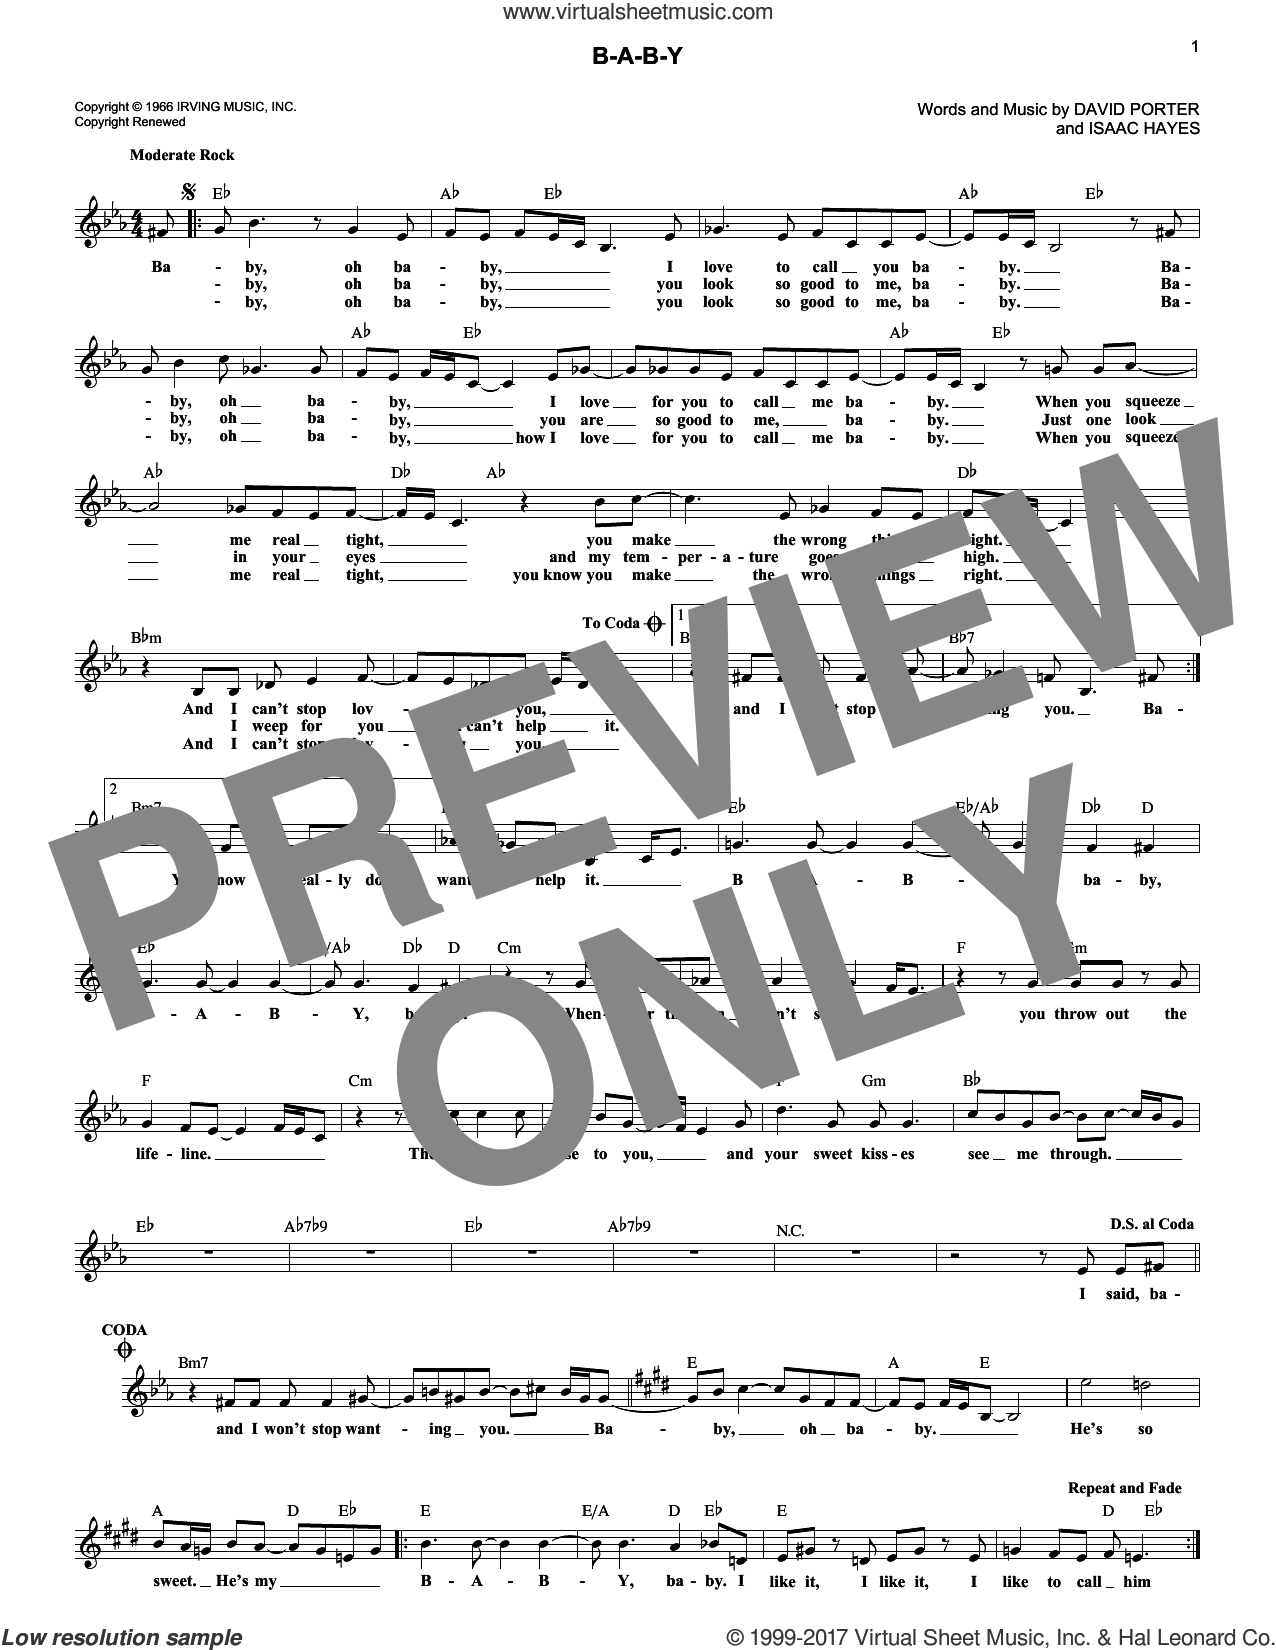 B-A-B-Y sheet music for voice and other instruments (fake book) by Carla Thomas, David Porter and Isaac Hayes, intermediate skill level